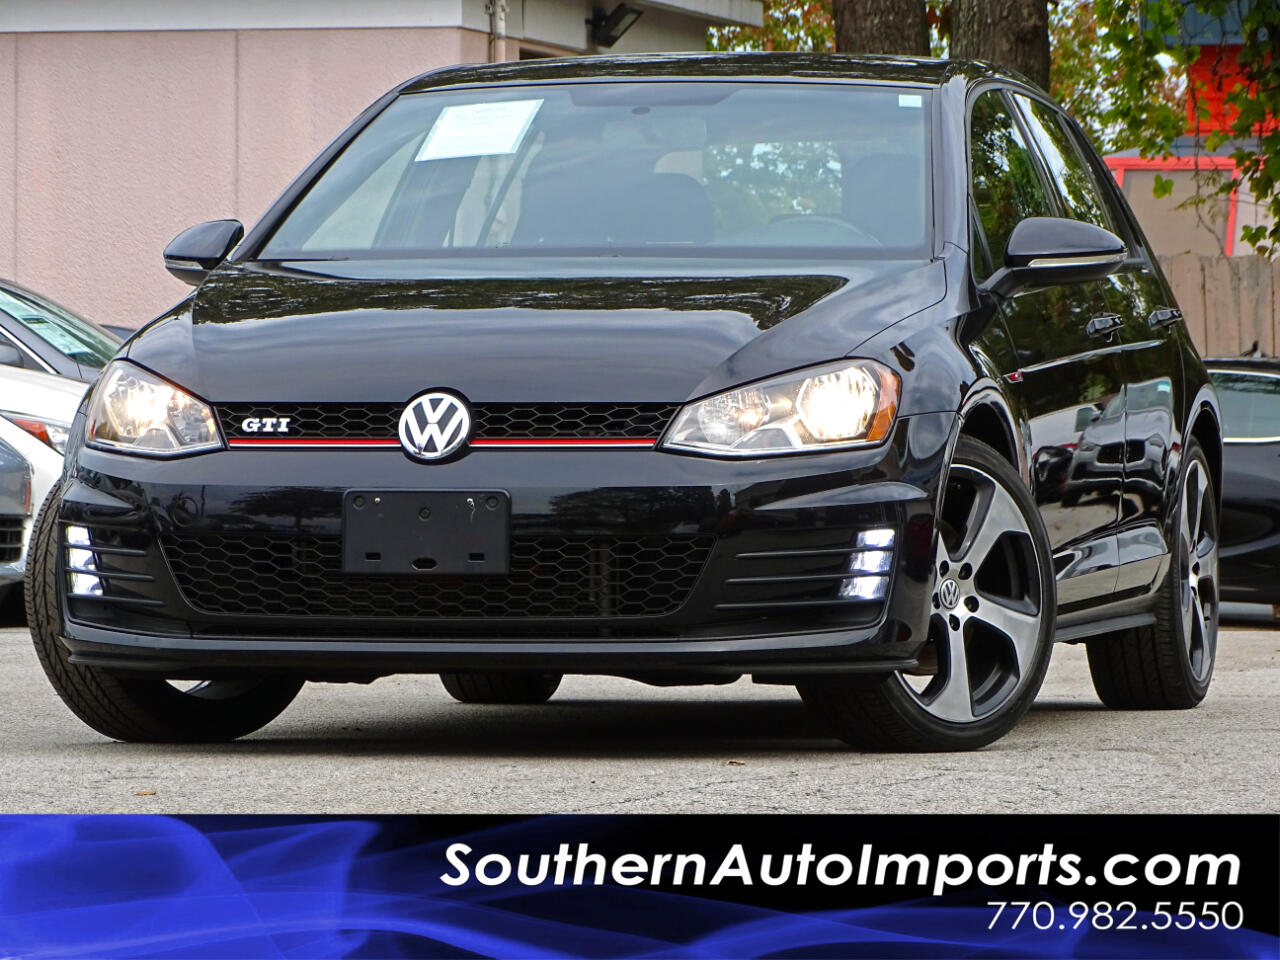 2016 Volkswagen Golf GTI S w/Back up Camera Heated Seats